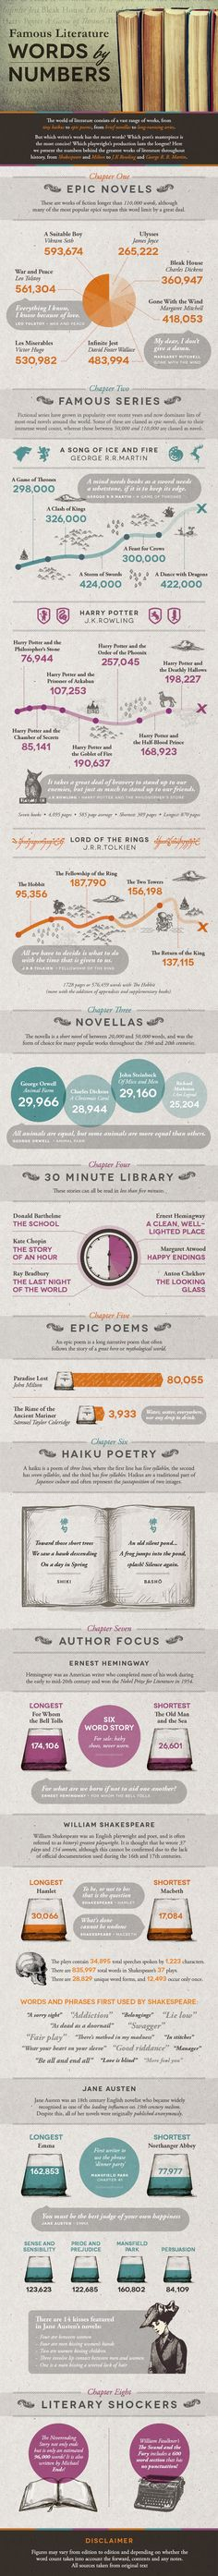 If you liked Electric Literature's Game of Books infographic that compared the length of A Song of Ice and Fire to classic novels, you…